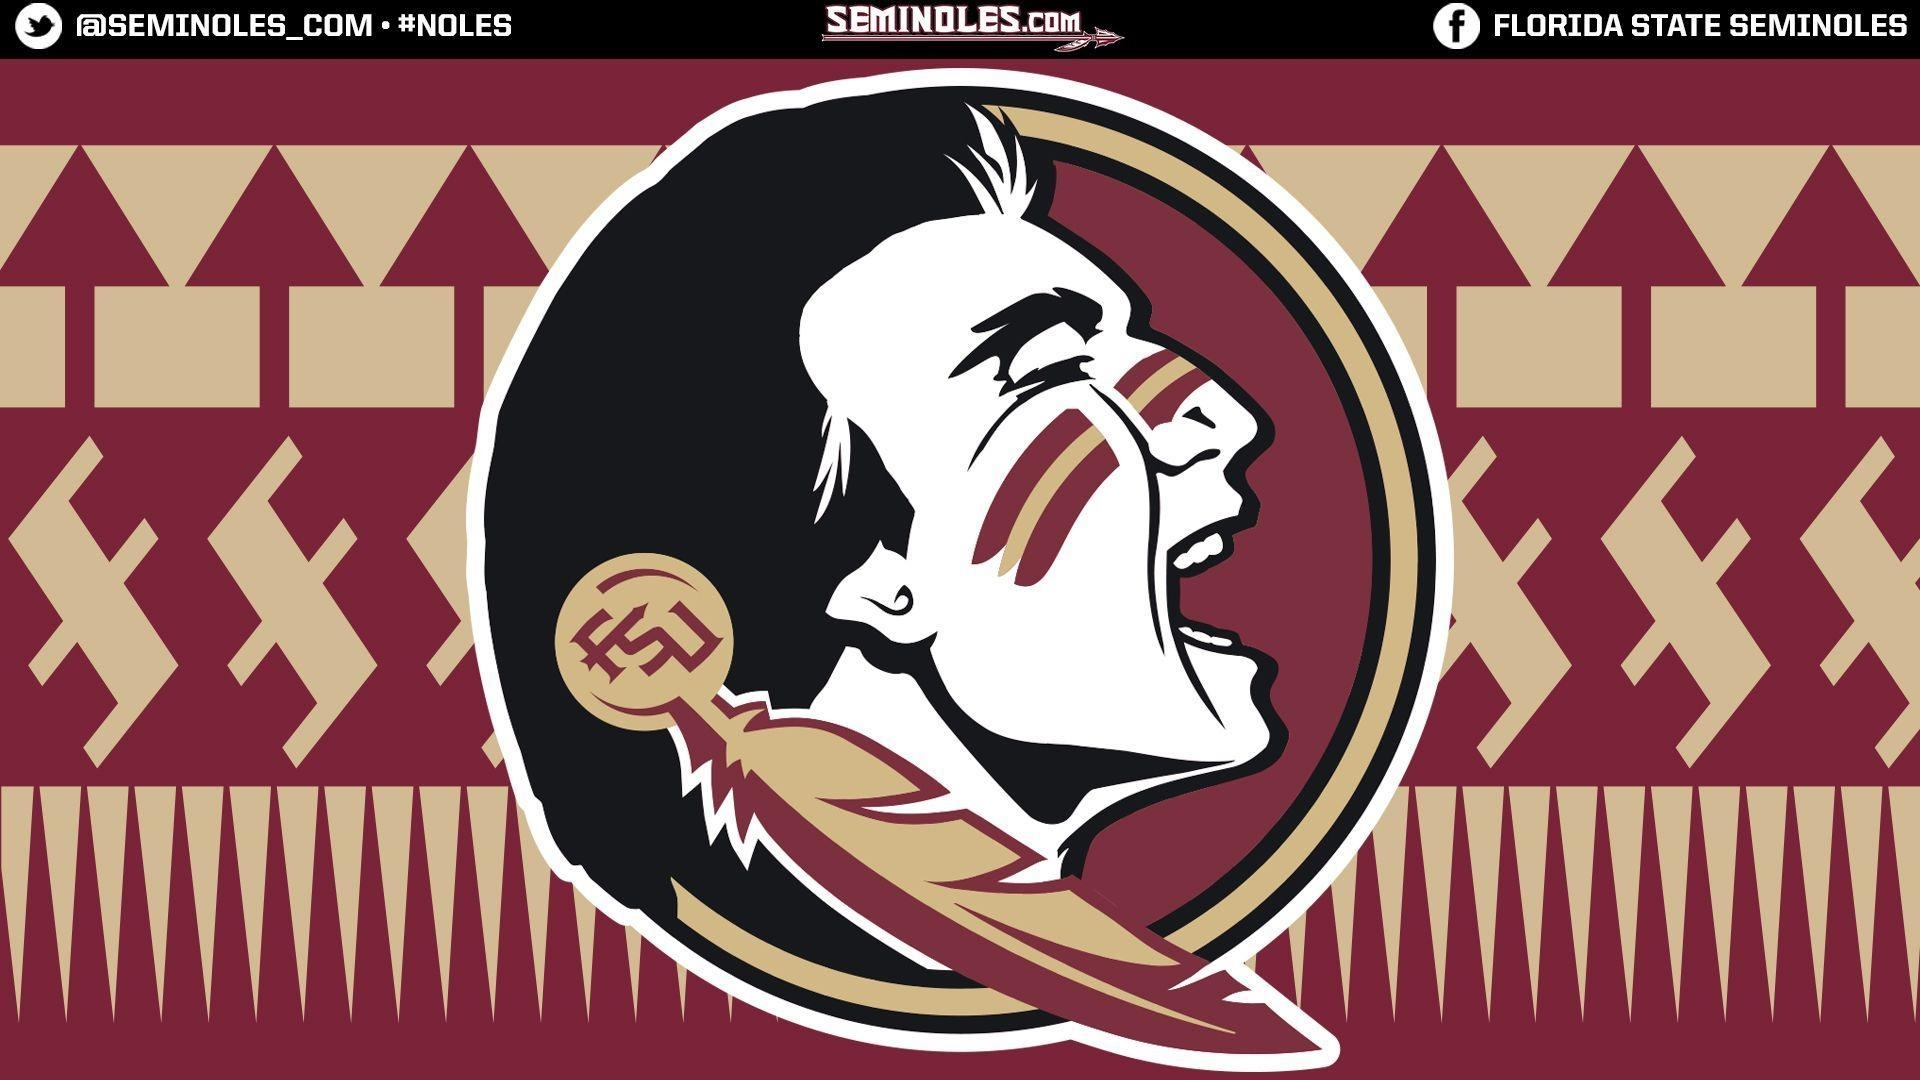 florida state university wallpapers - wallpaper cave